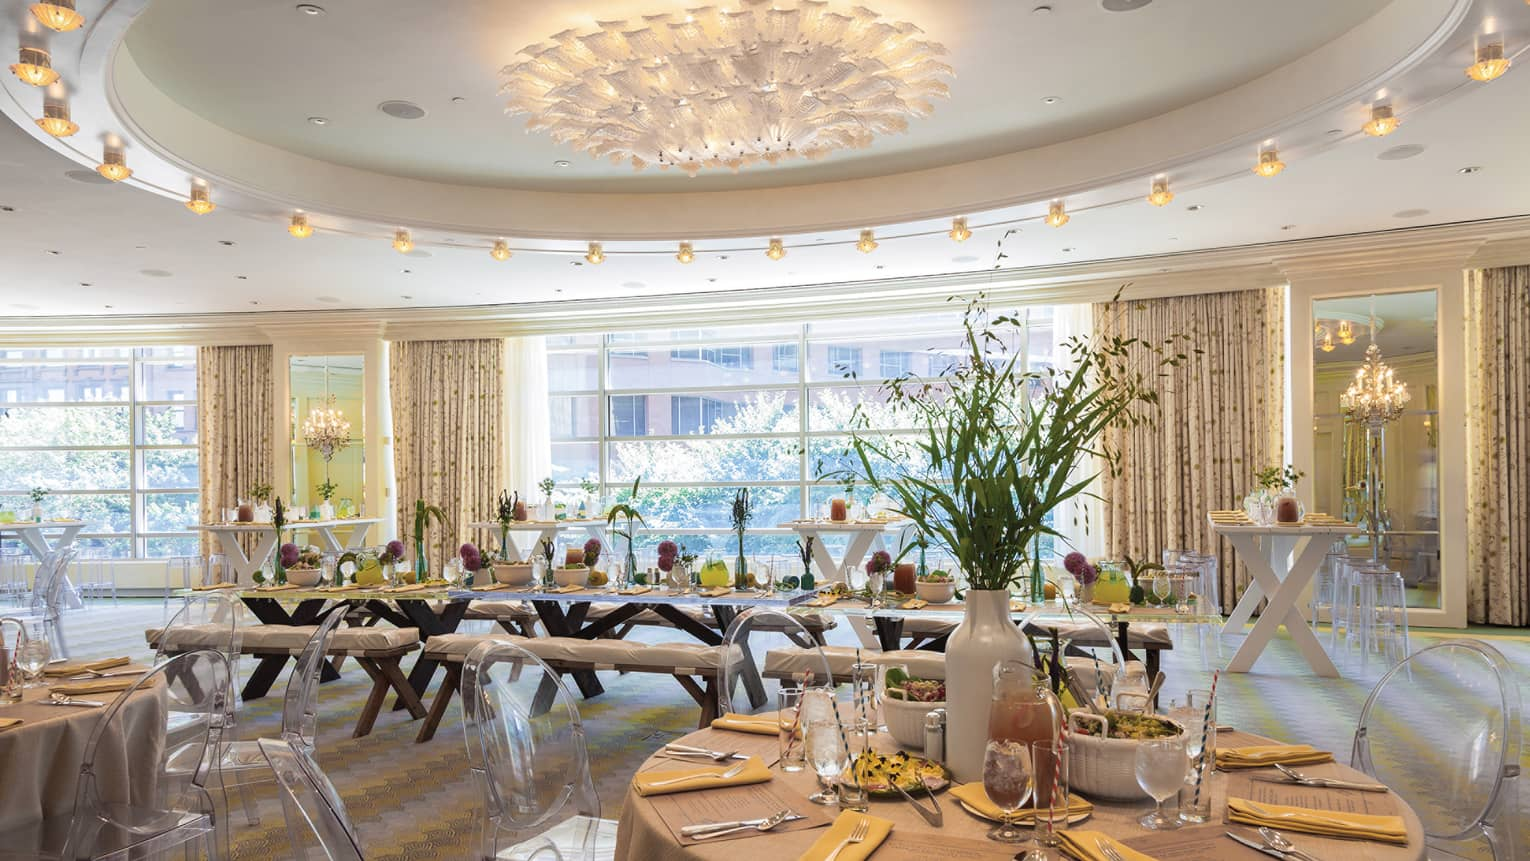 A bright room with circular tables has menus at each place setting in preparation for a meal